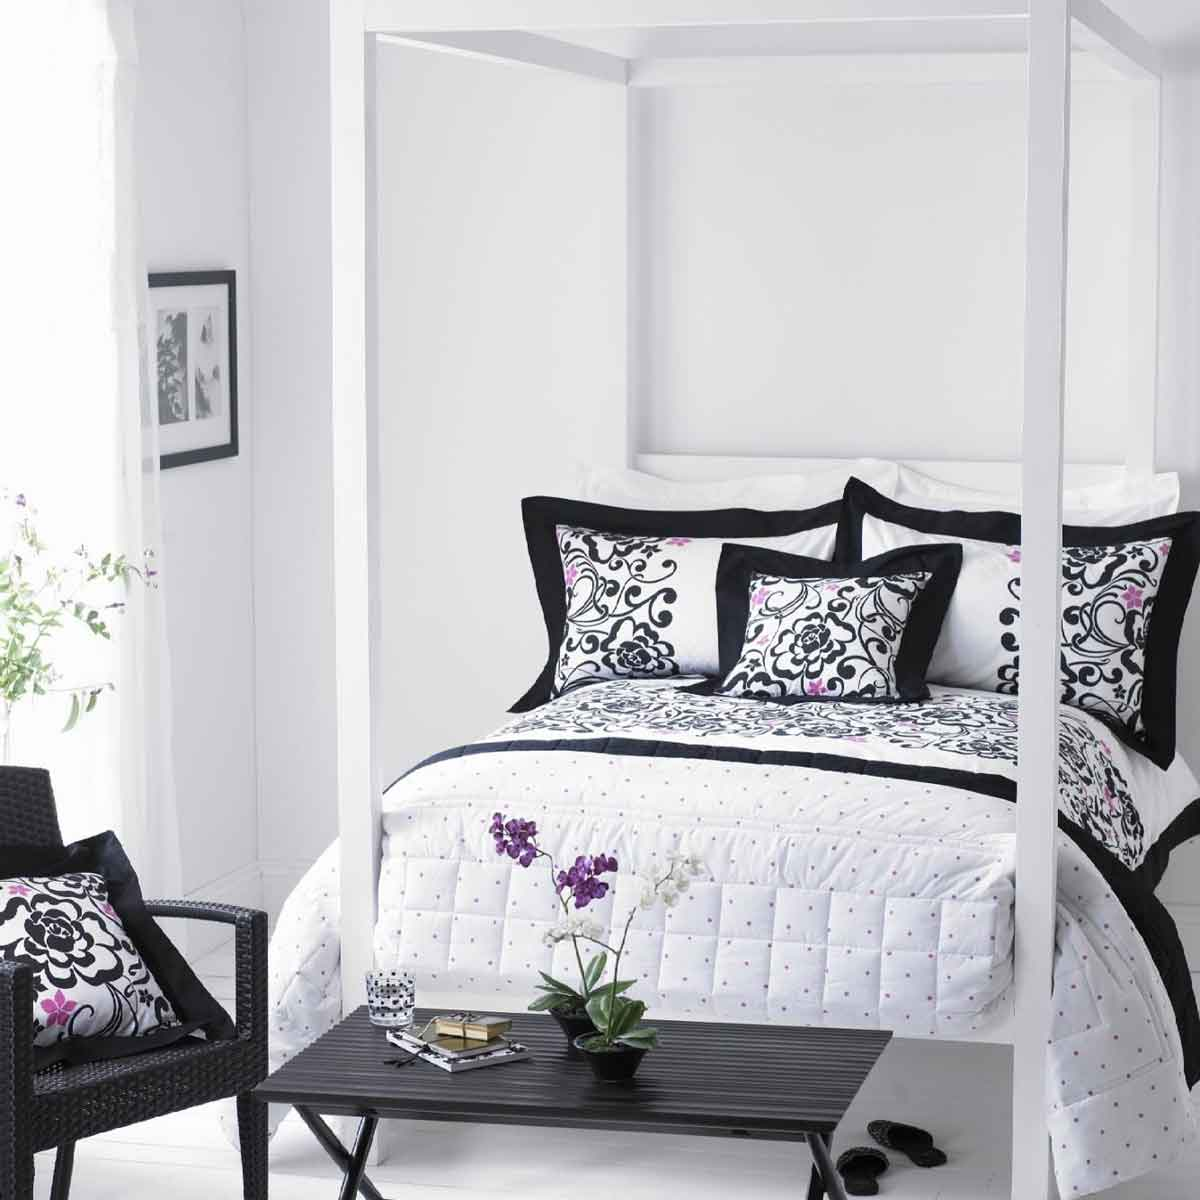 Modern black and white bedroom ideas for Monochrome design ideas